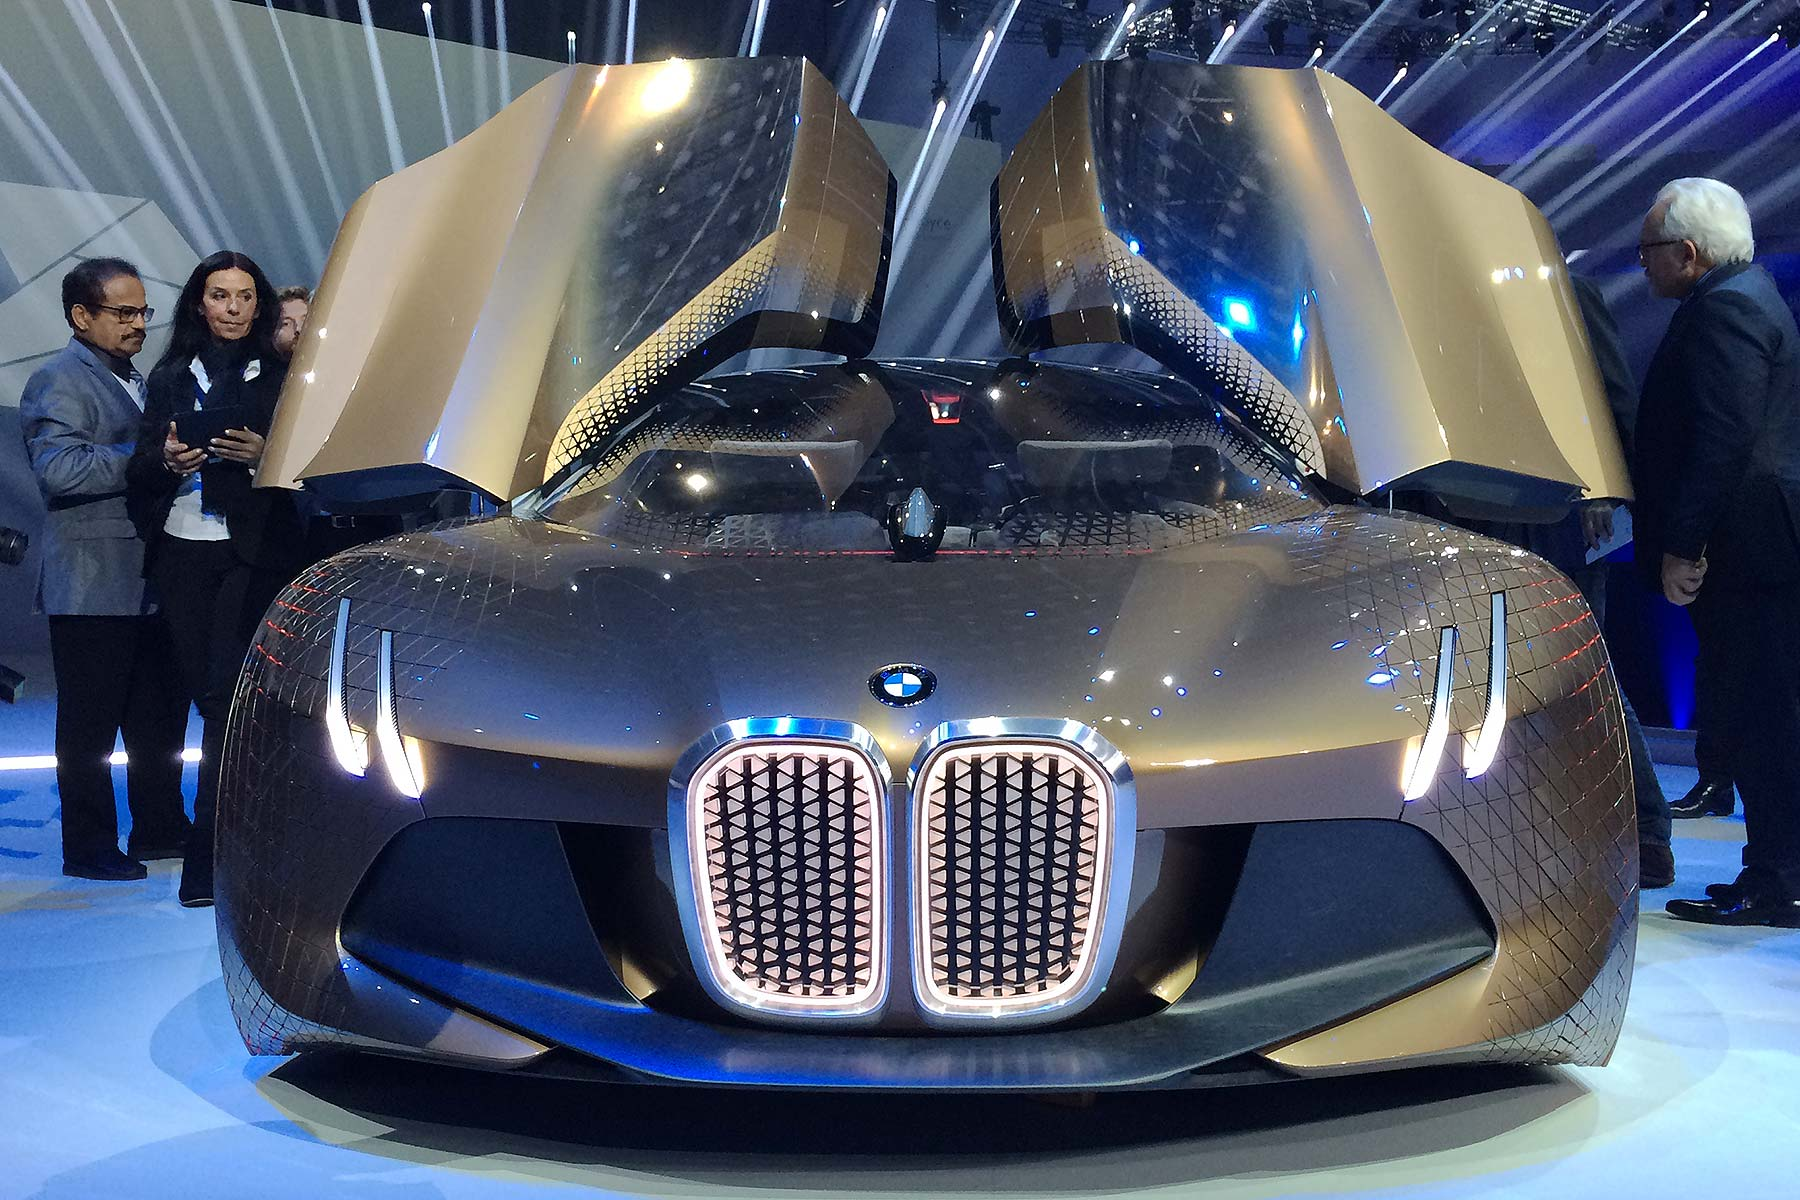 BMW Vision Next 100: The supercar turns unreal ambitions into reality